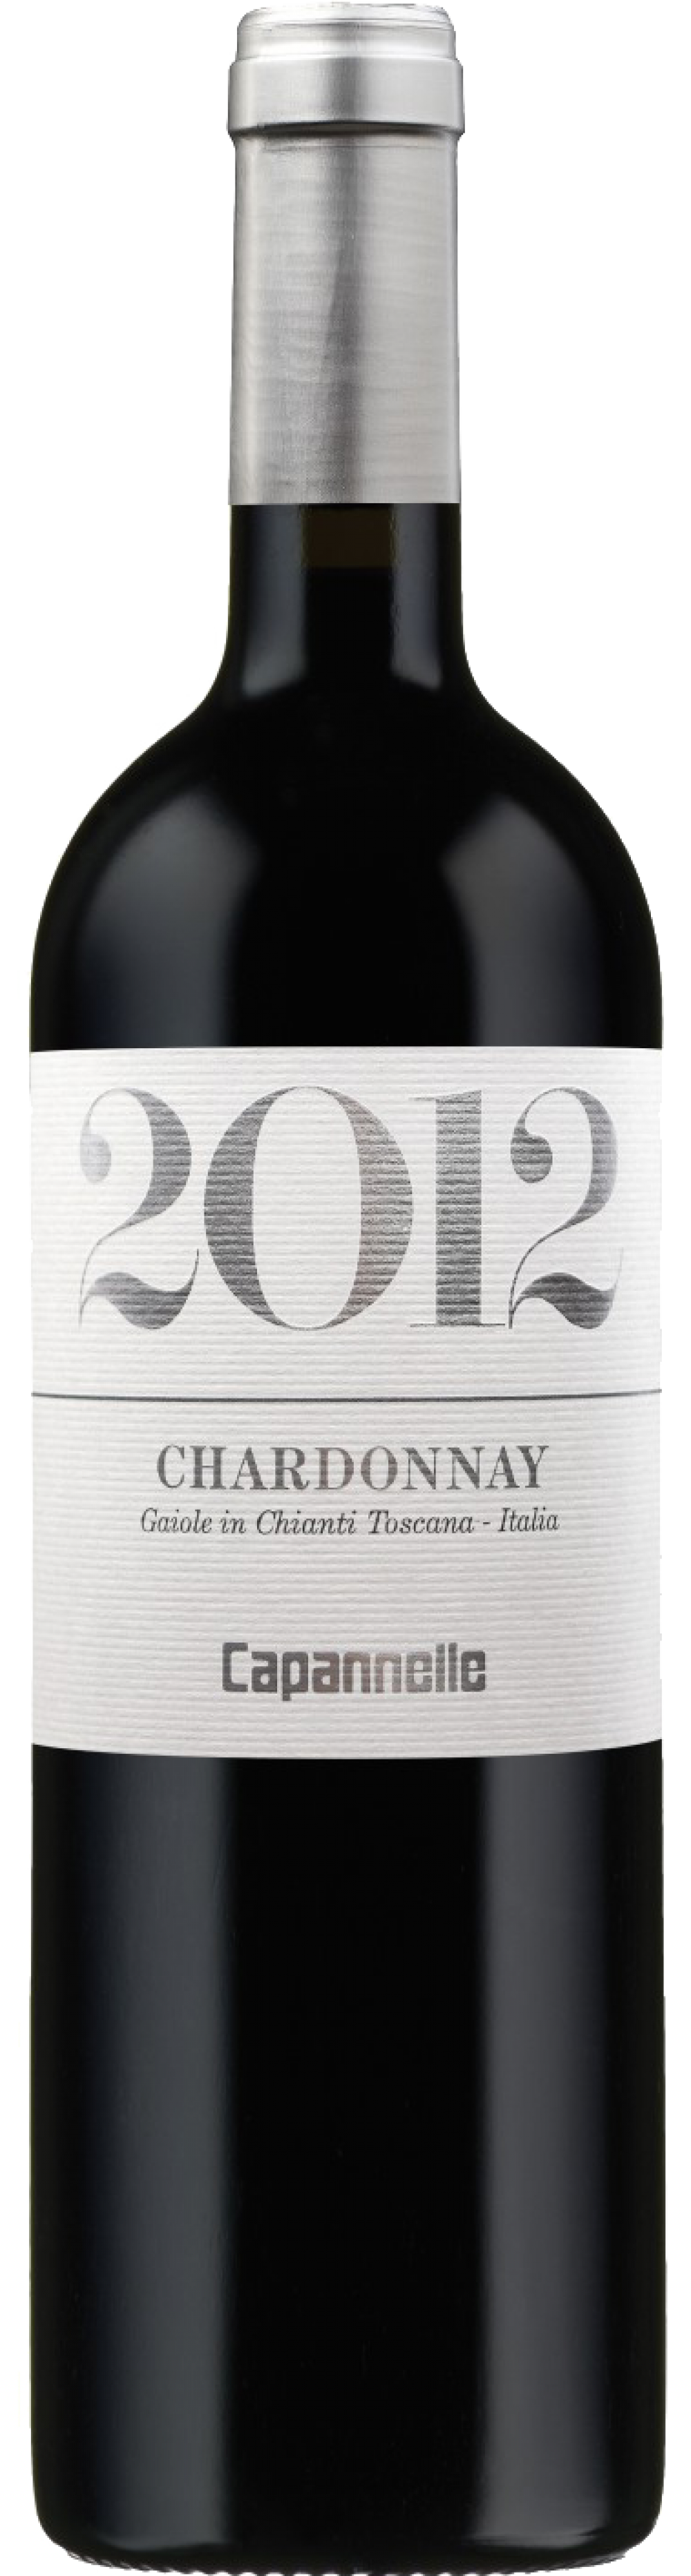 files/images/wines/Italy/capannelle-tuscany/2012 Chardonnay Capennelly IGT copy.png